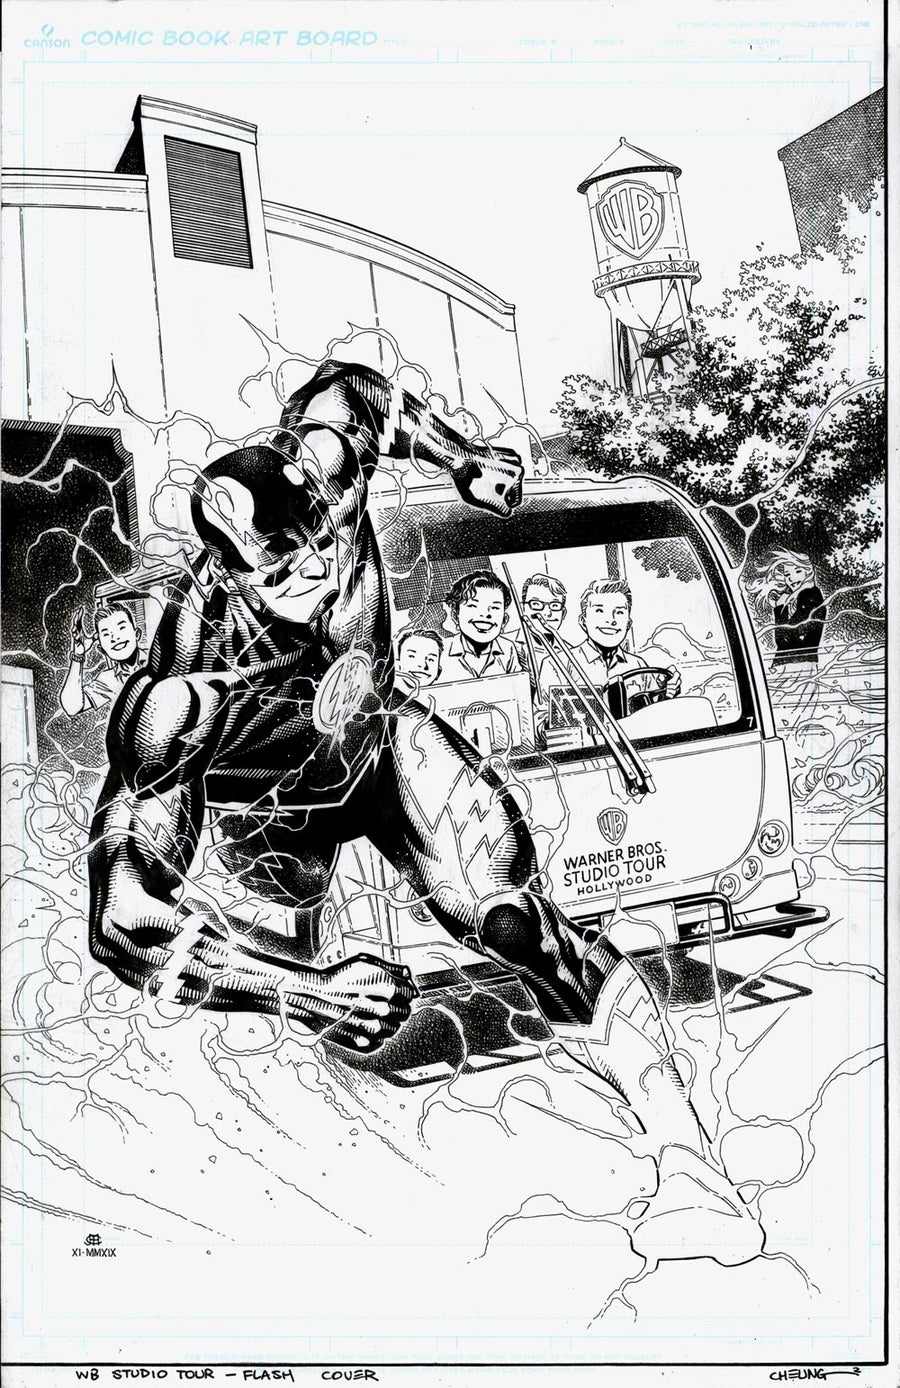 Image of FLASH (WB Studios Tour Exclusive TPB Cover)